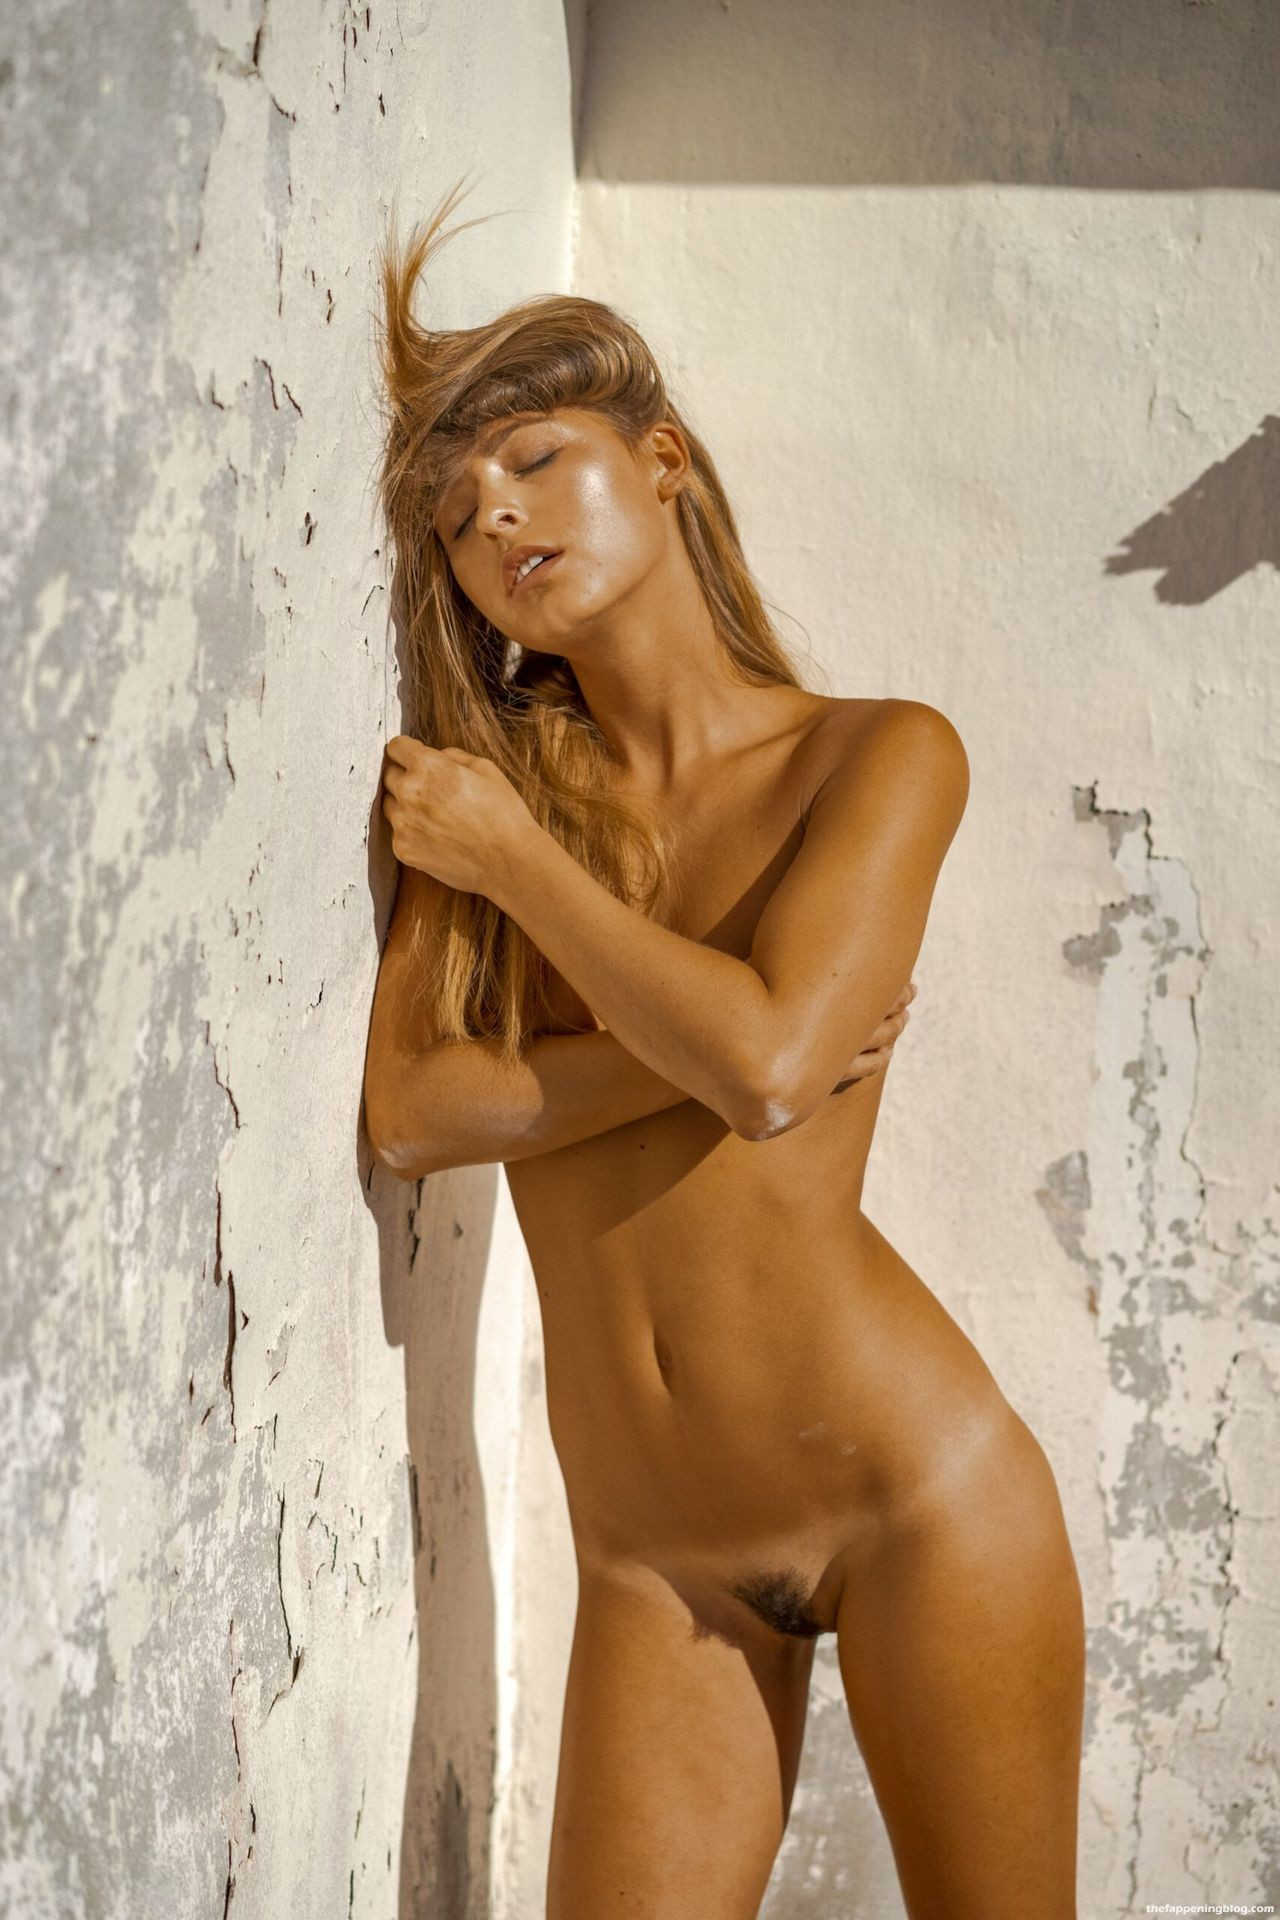 Marisa-Papen-Stunning-Naked-Body-20-scaled1-thefappeningblog.com_.jpg